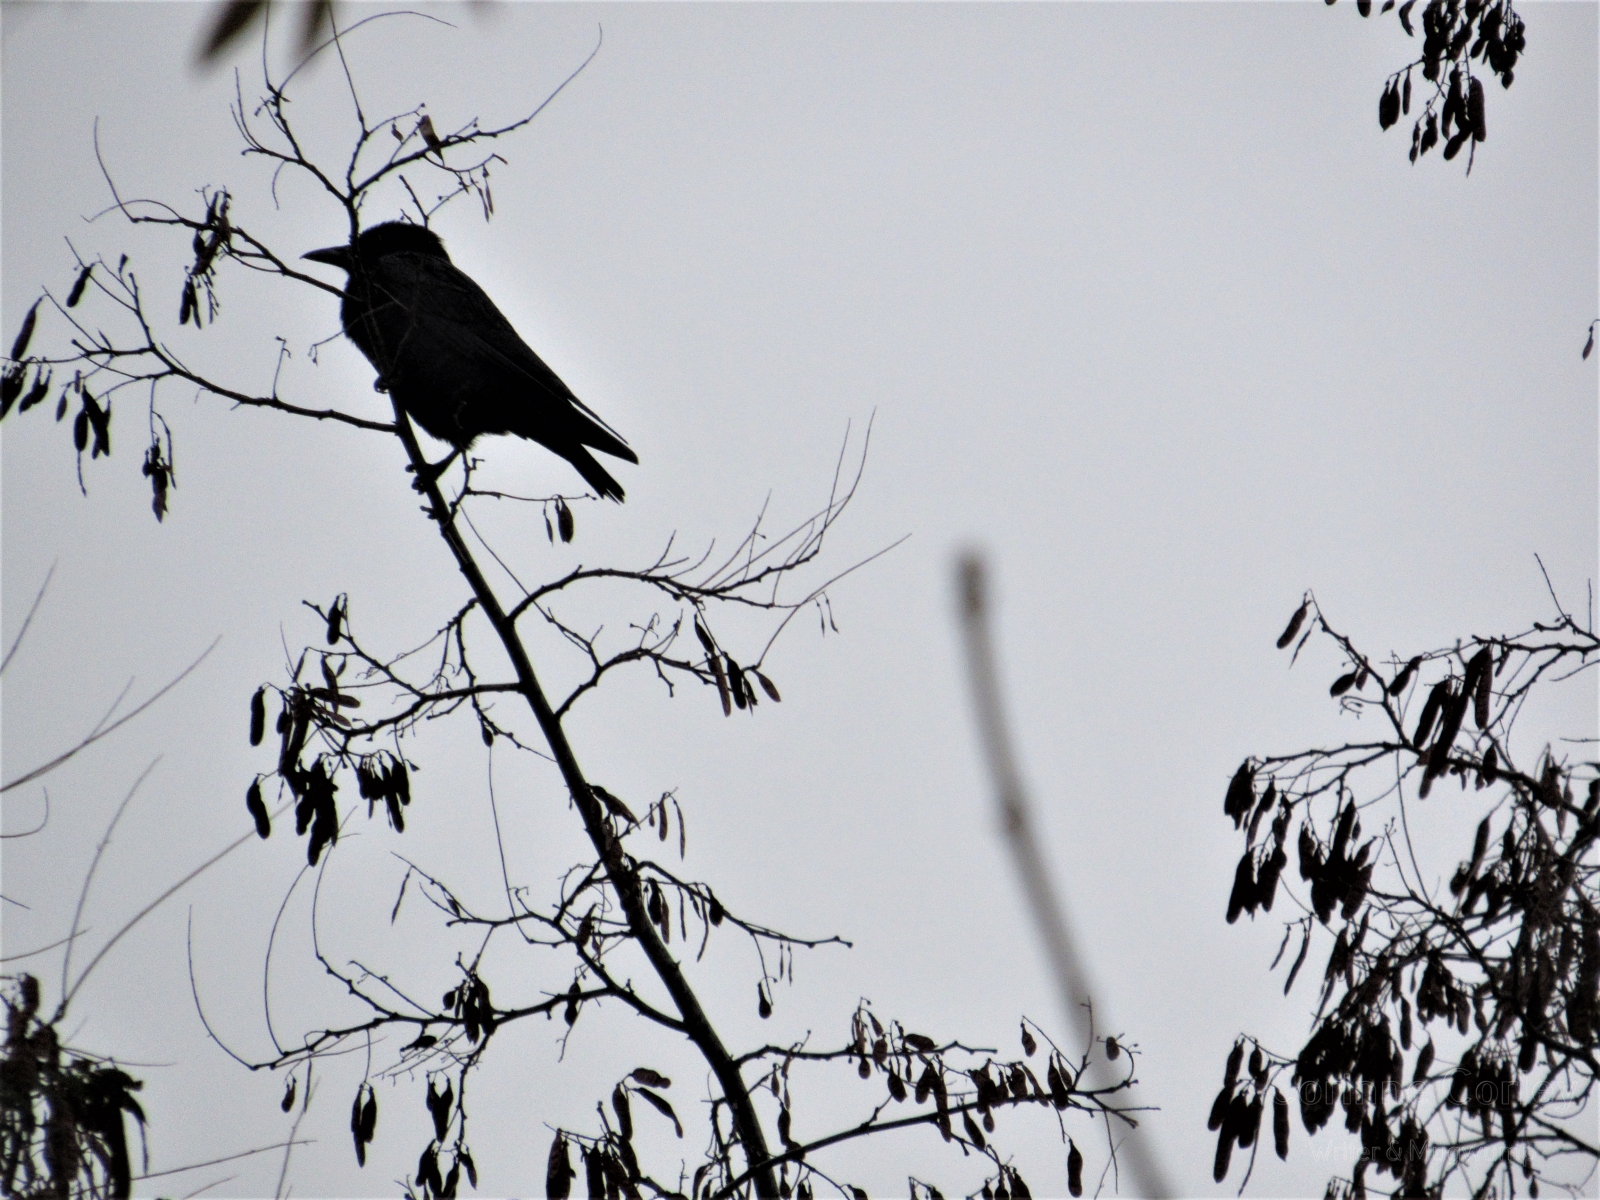 Crows-16